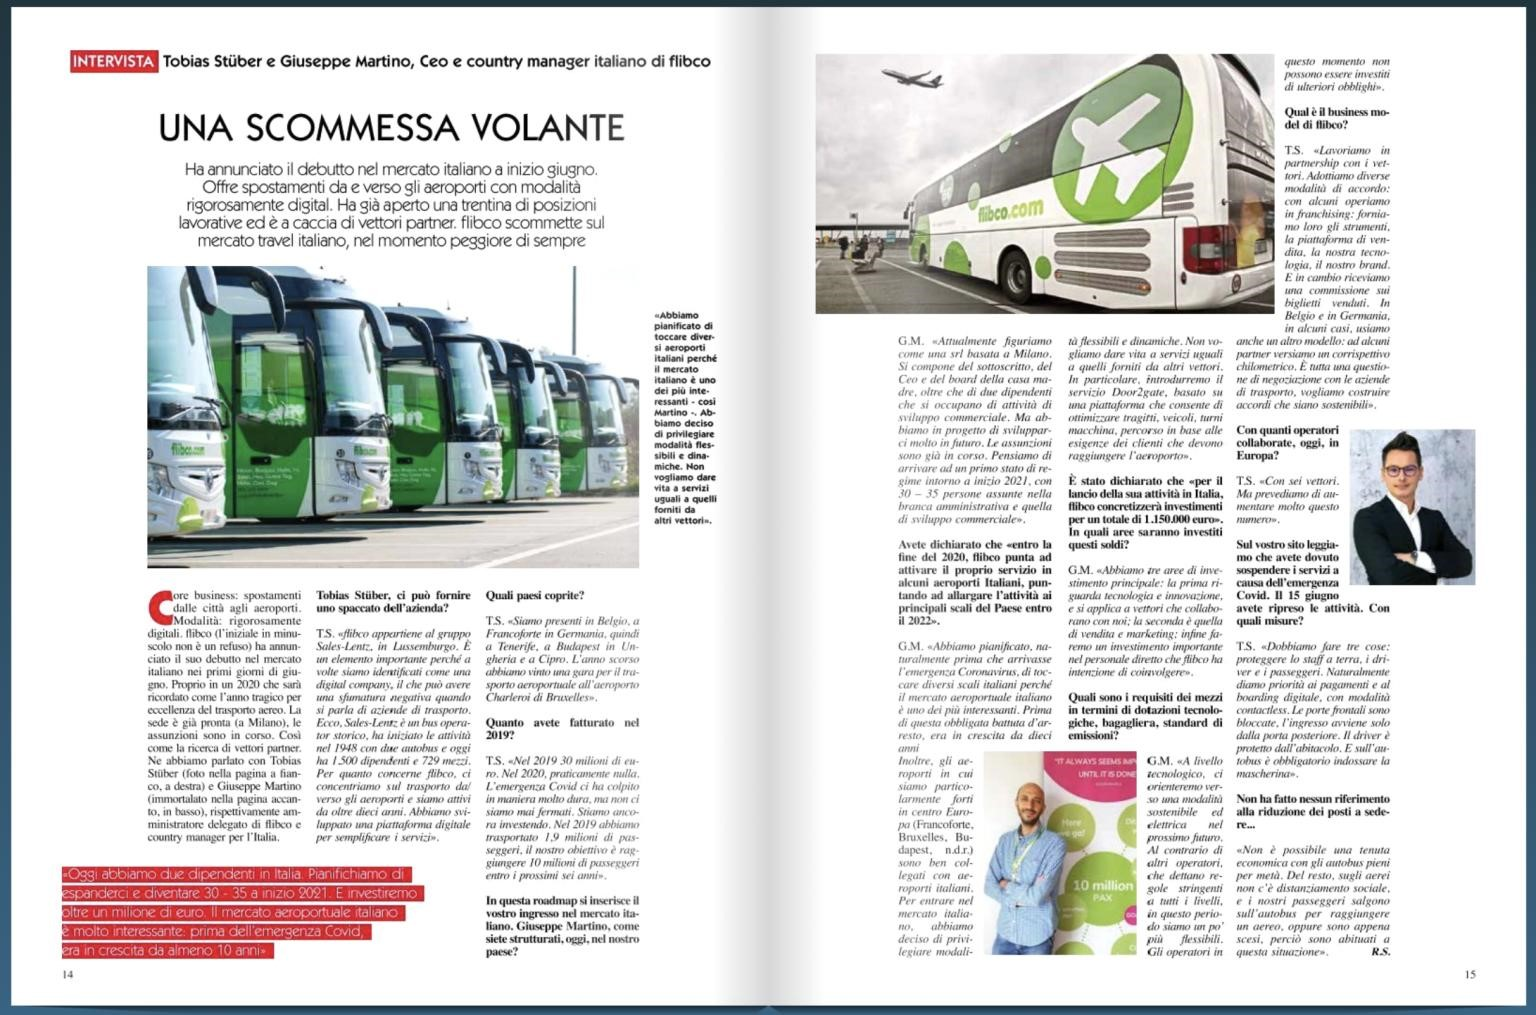 Article on Autobus